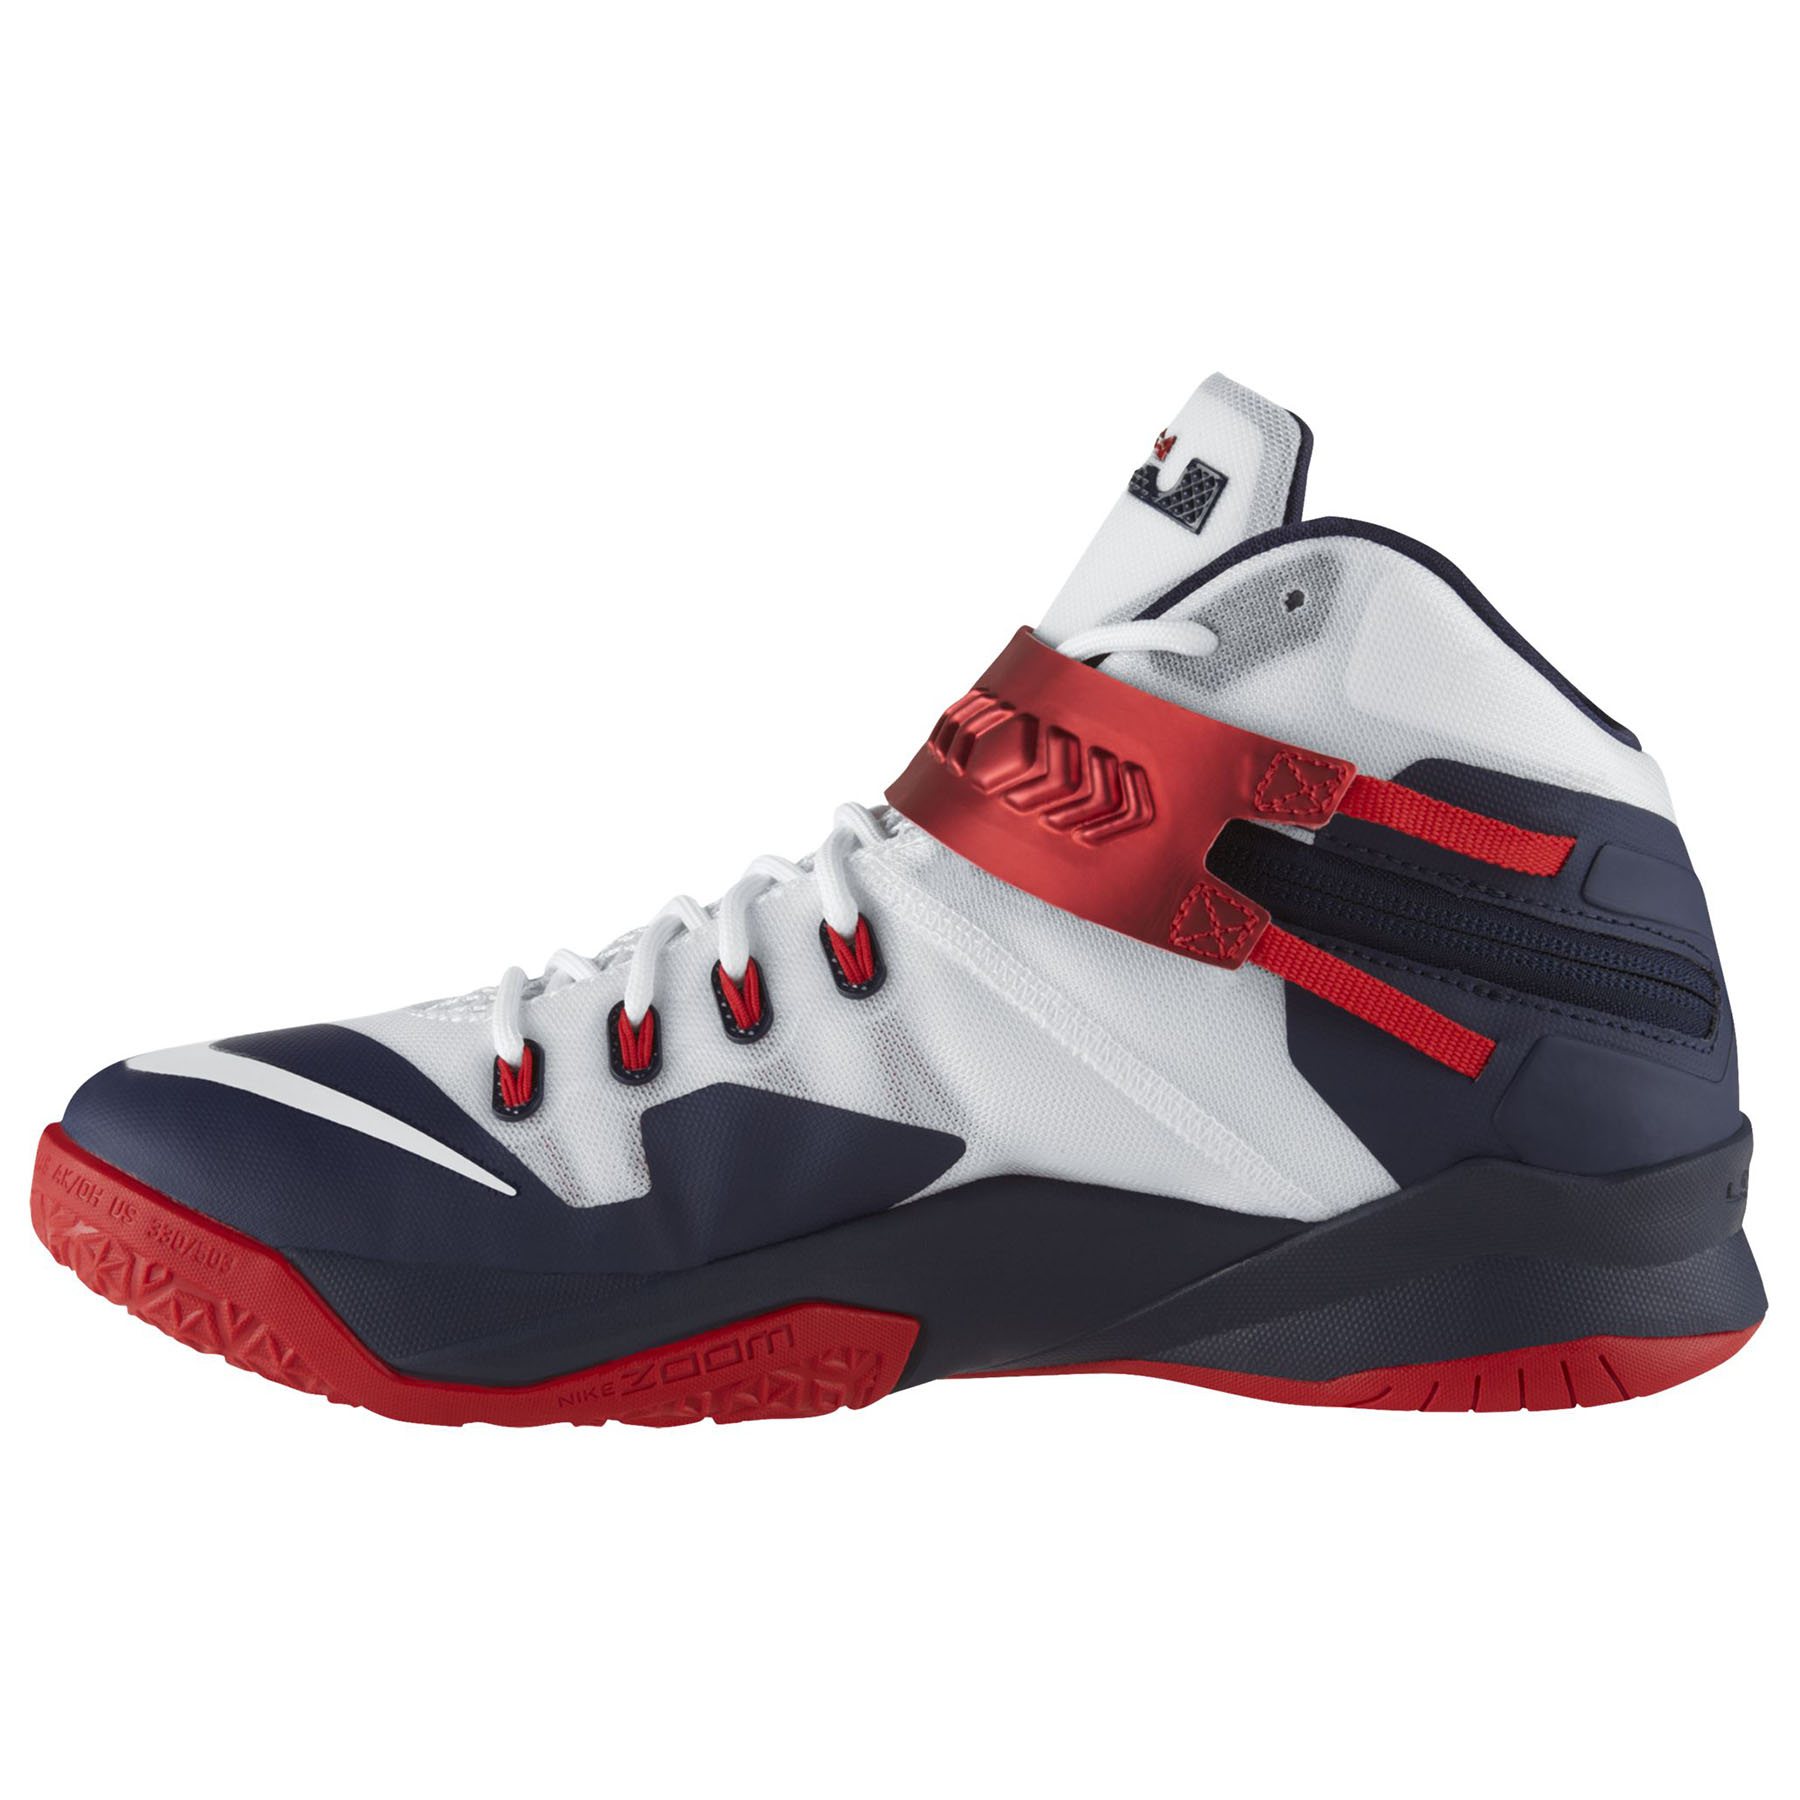 Nike Zoom Soldier VIII Basketball Shoe - White/White/Obsidian